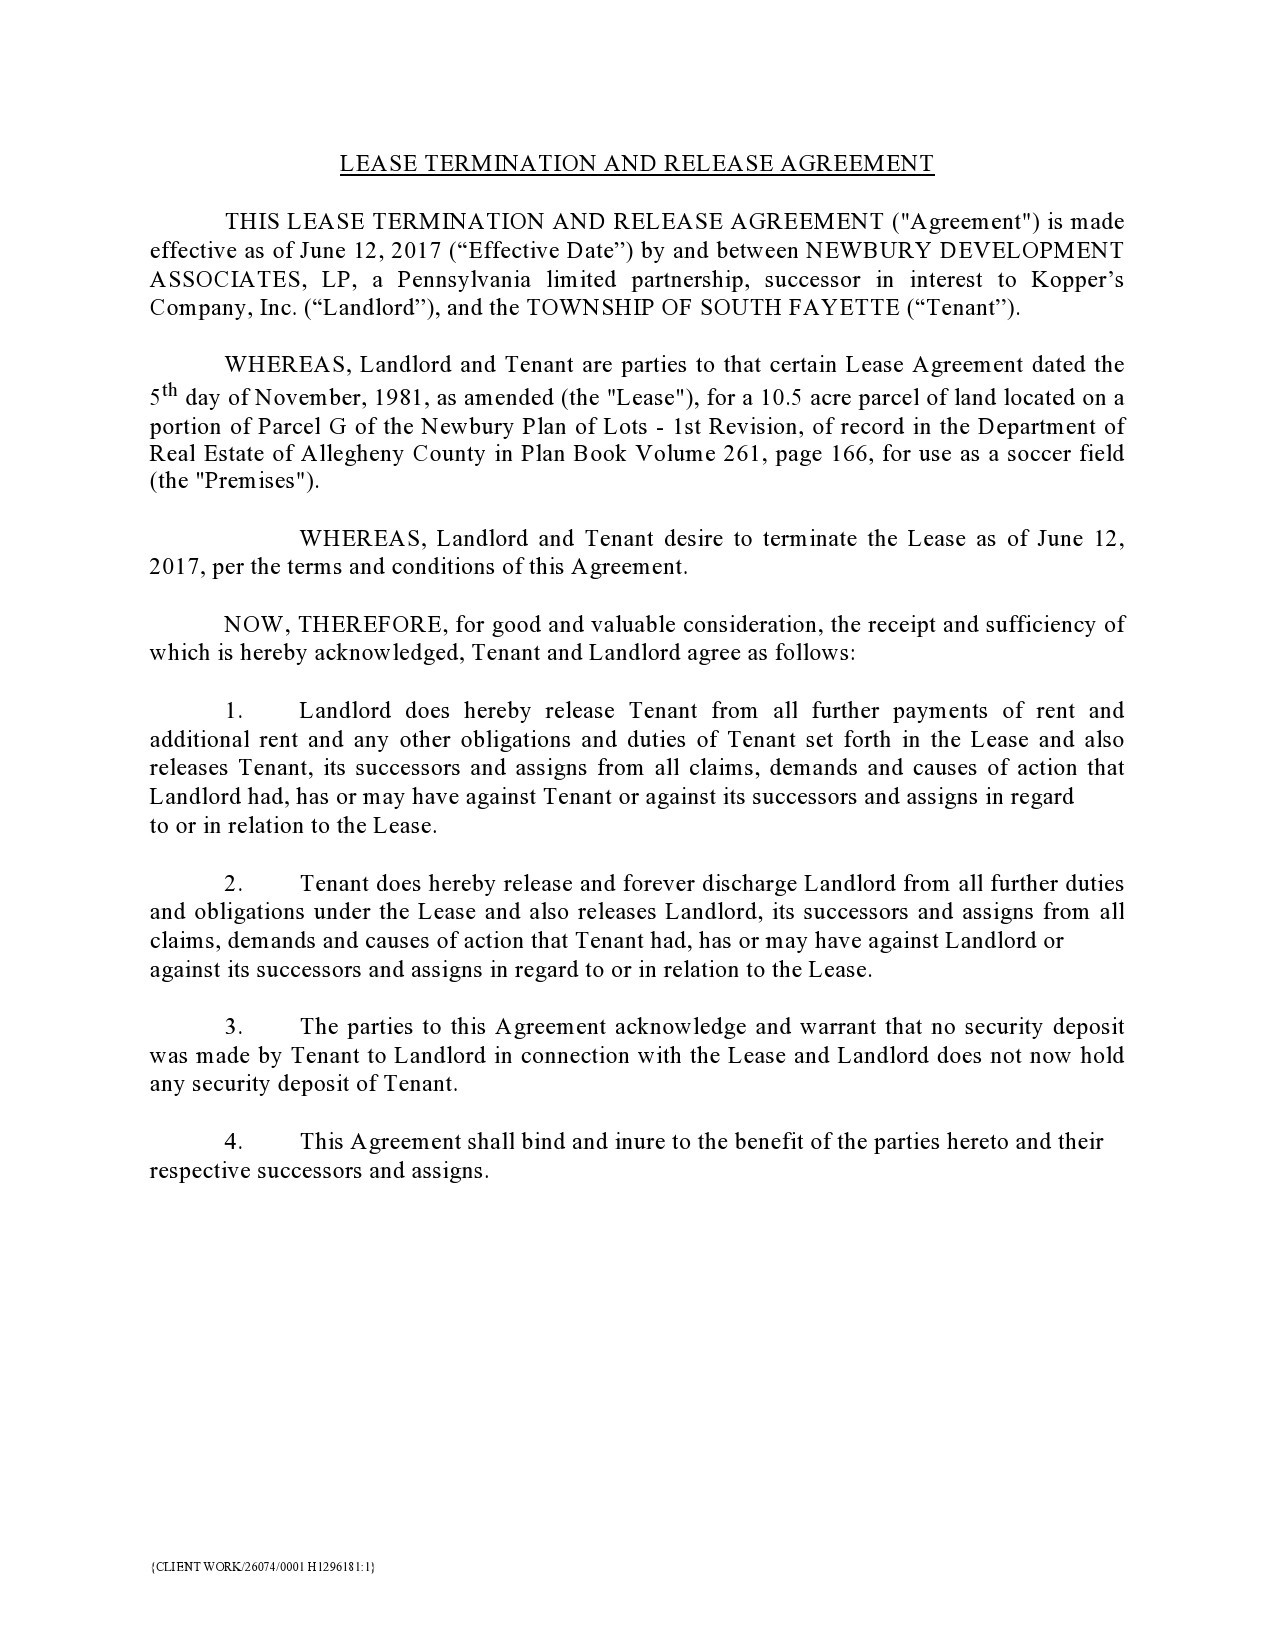 Free lease termination agreement 41